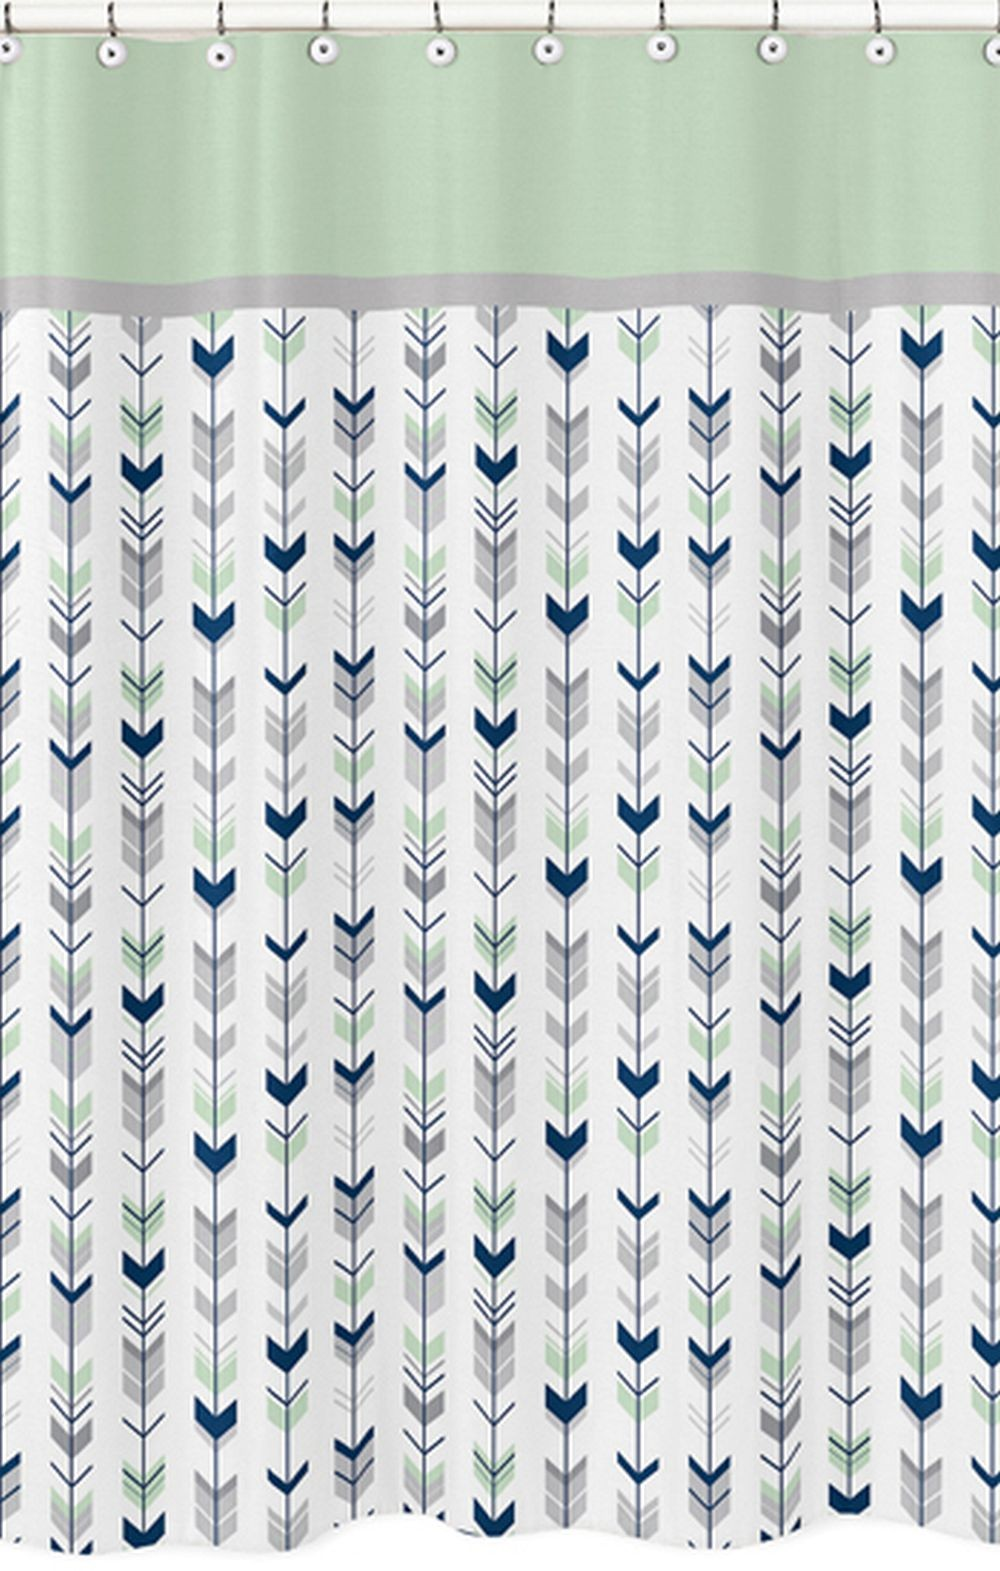 Mod Arrow Gray Navy Mint Shower Curtain Blanket Warehouse